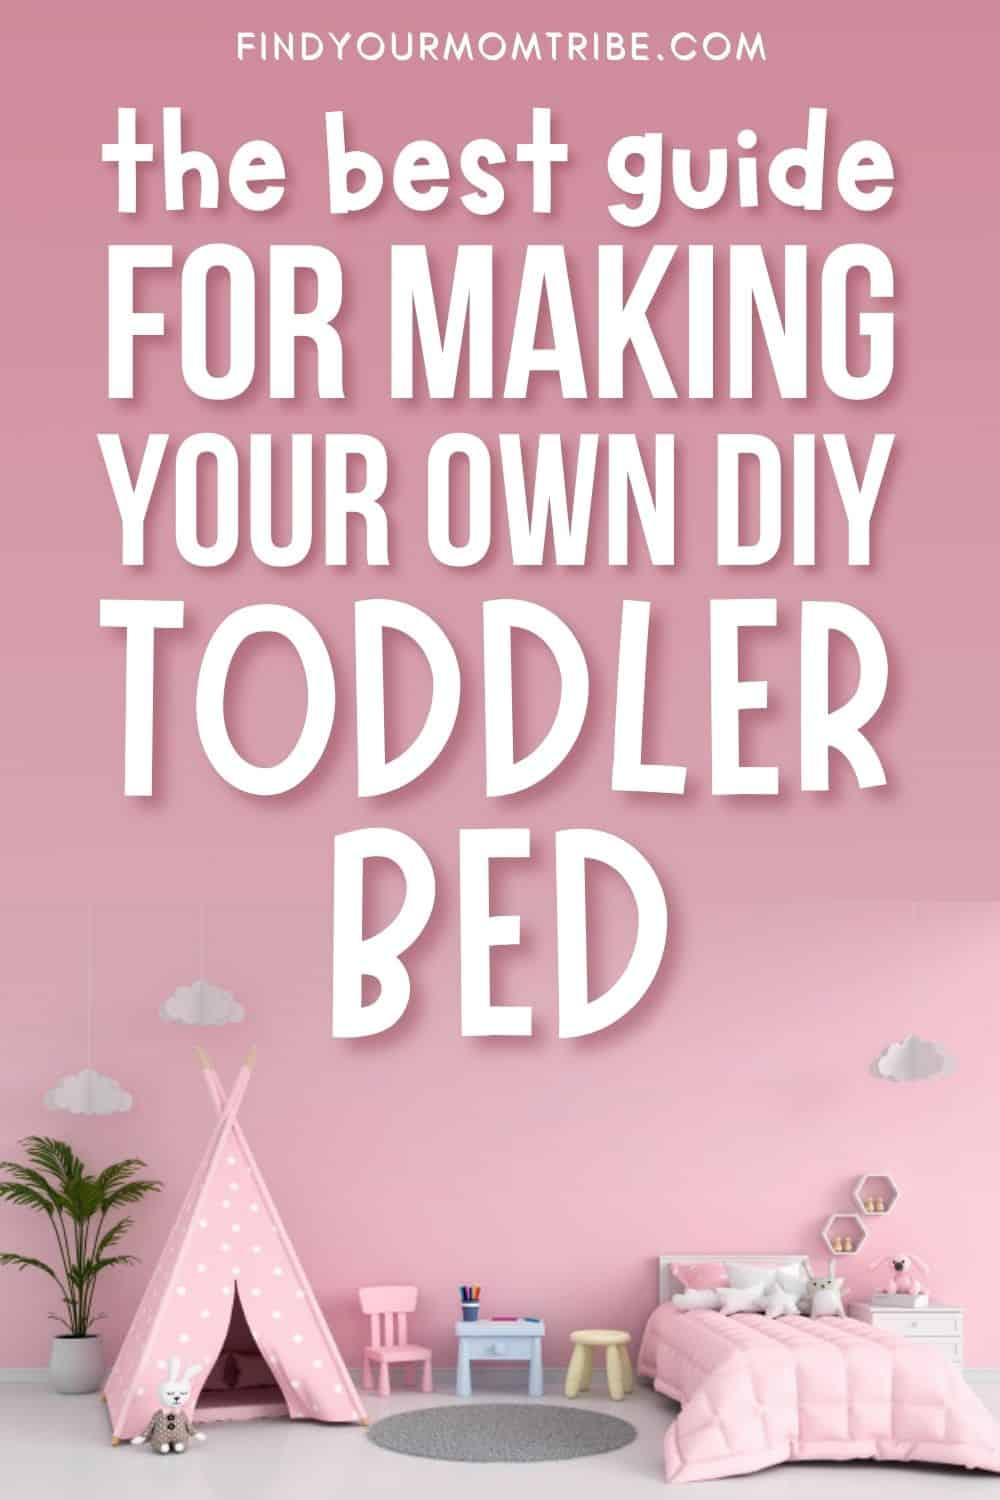 The Best Guide For Making Your Own DIY Toddler Bed Pinterest